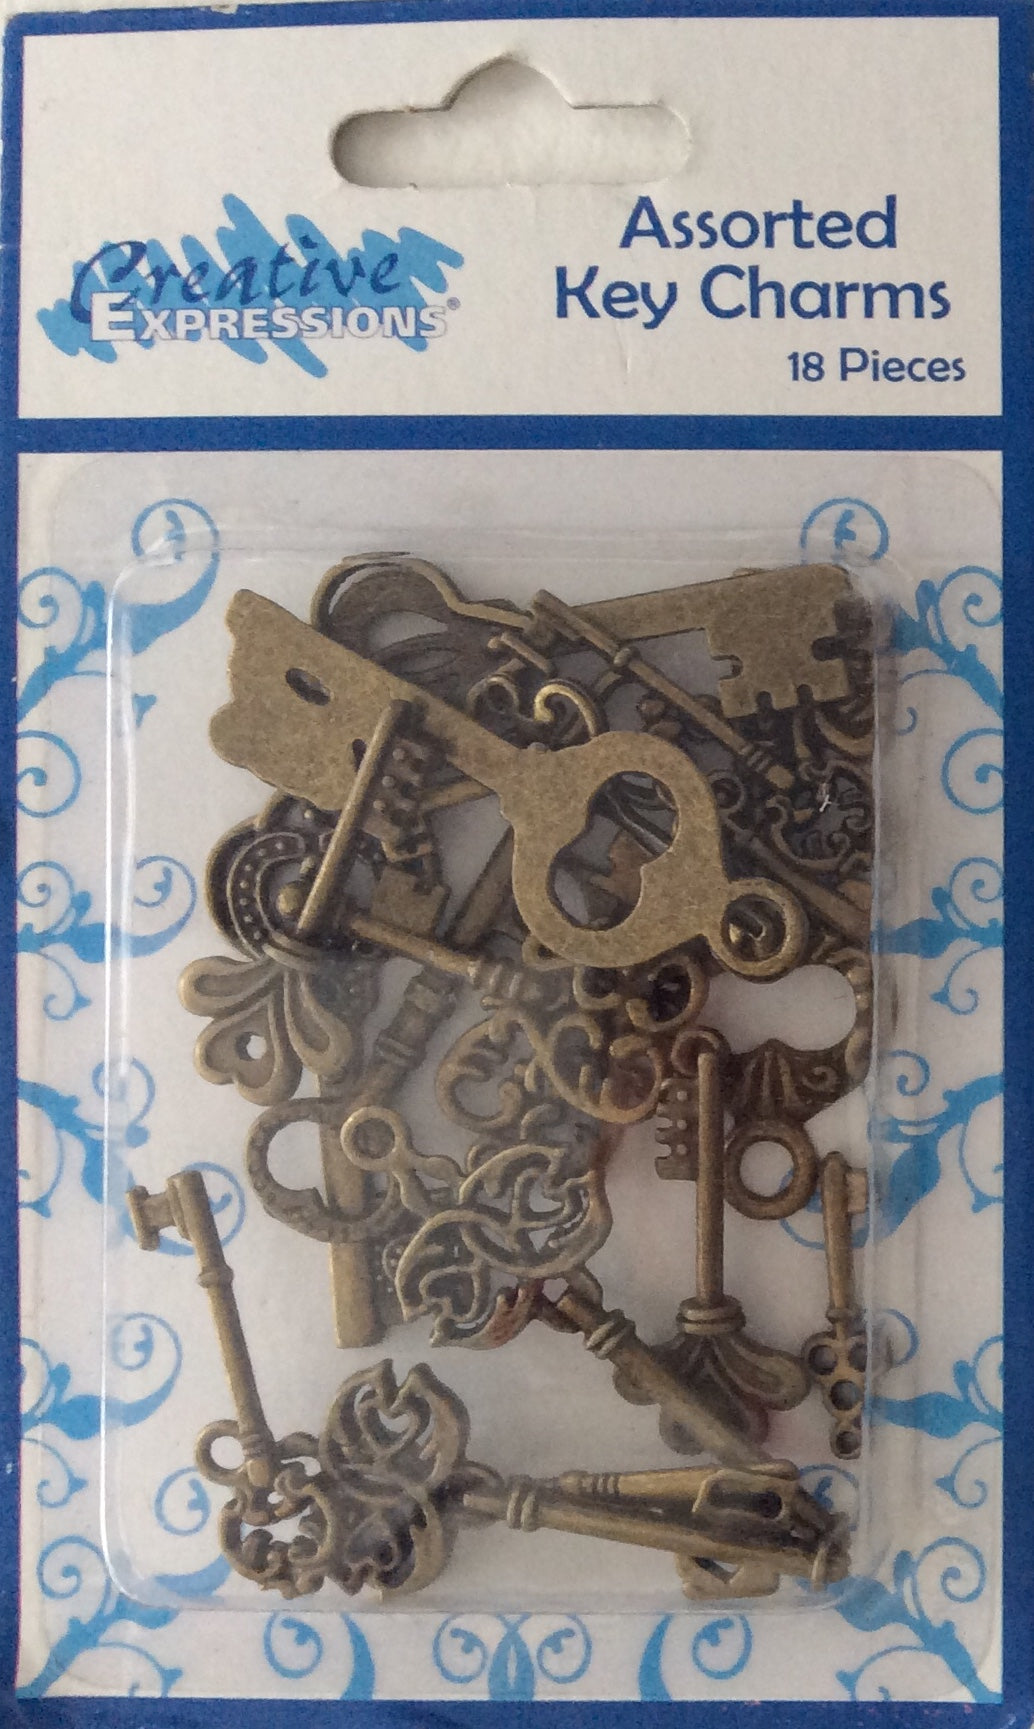 Creative Expressions Assorted Key Charms 18 Pieces